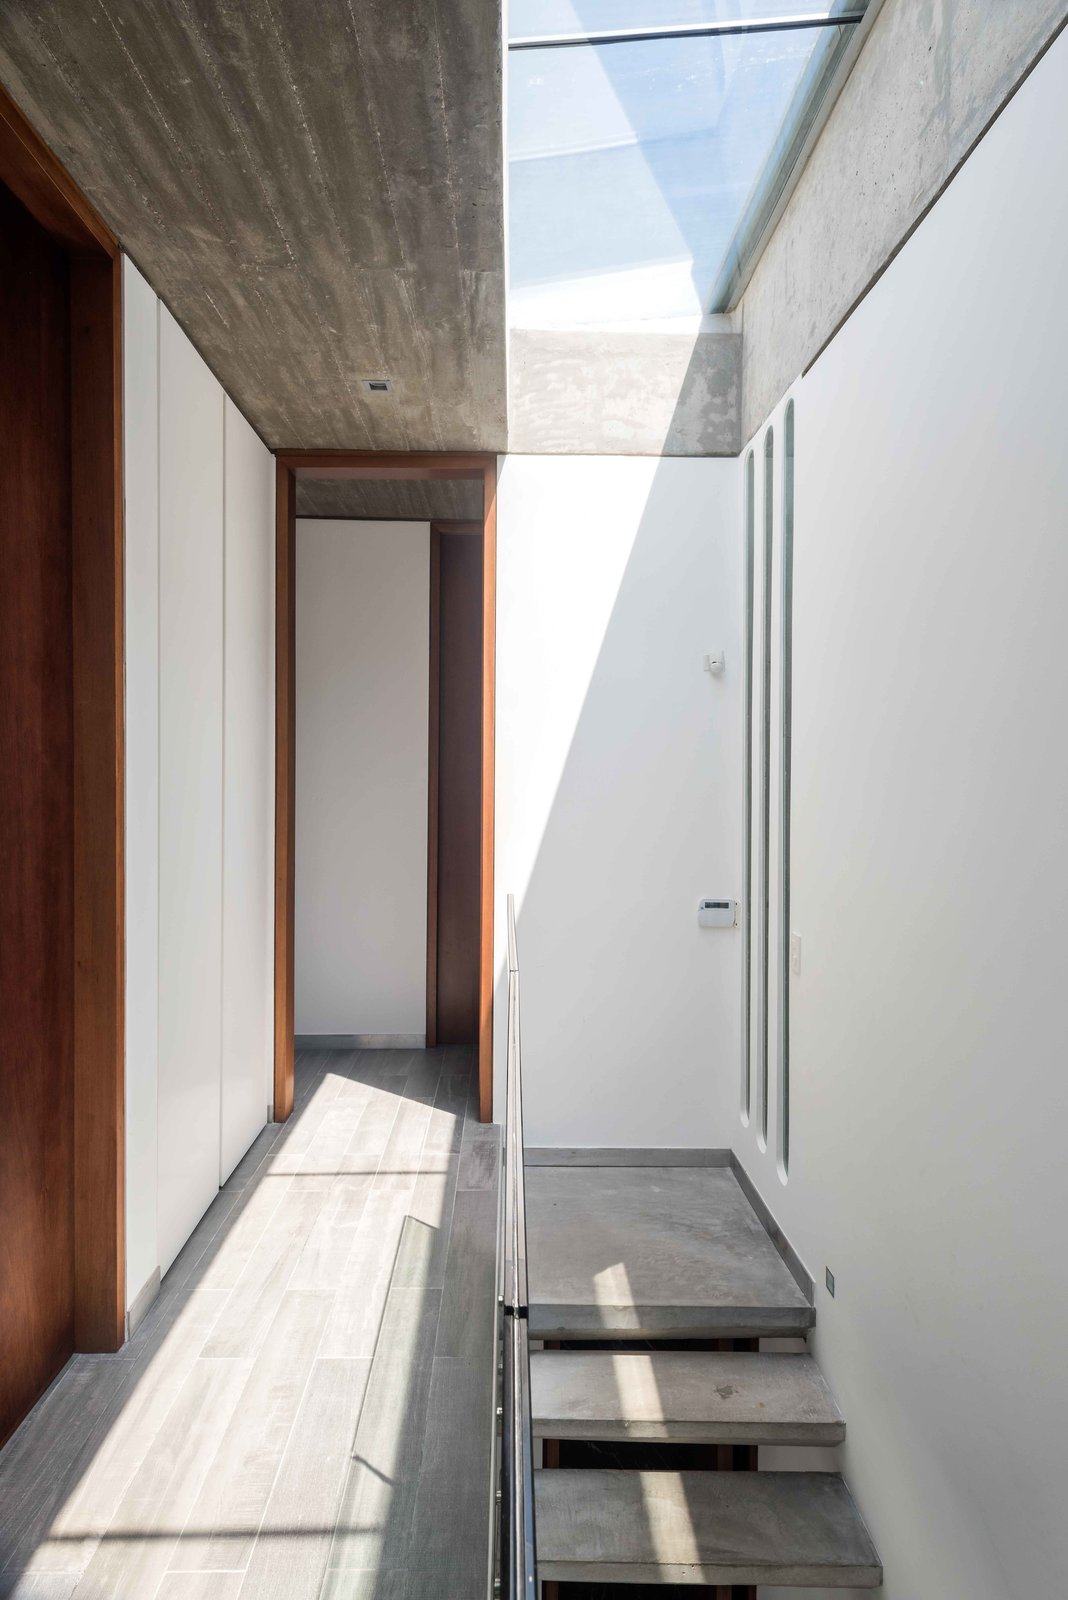 Hallway and Concrete Floor Bedroom Hall  La Iluminada by MARTIN GOMEZ ARQUITECTOS